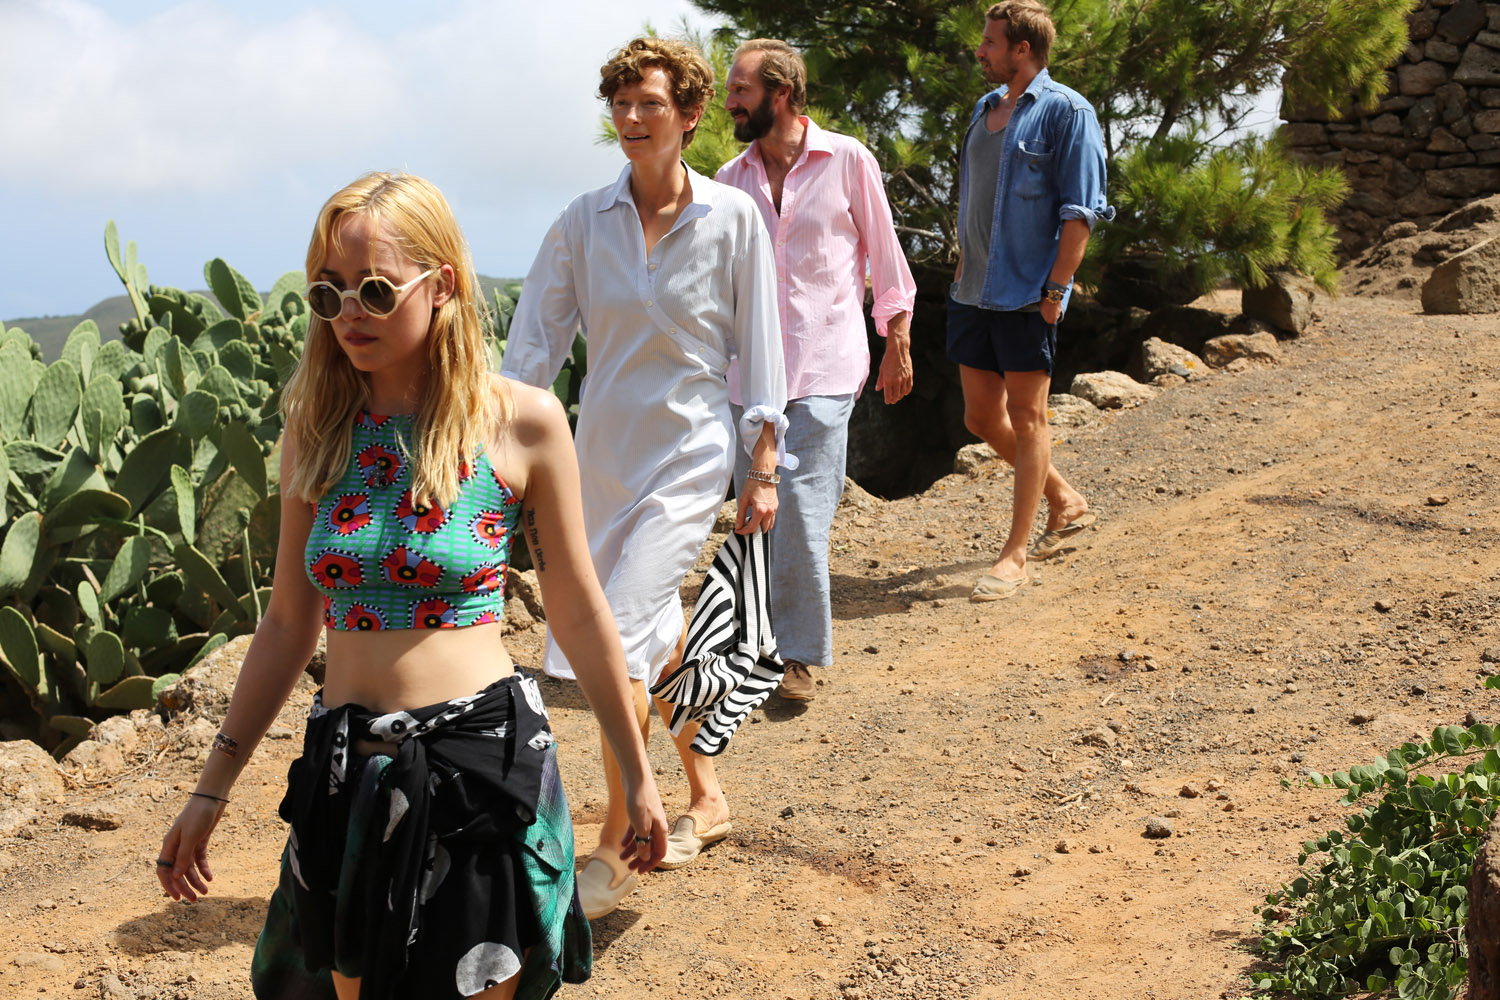 'A Bigger Splash' movie review by Lucas Mirabella